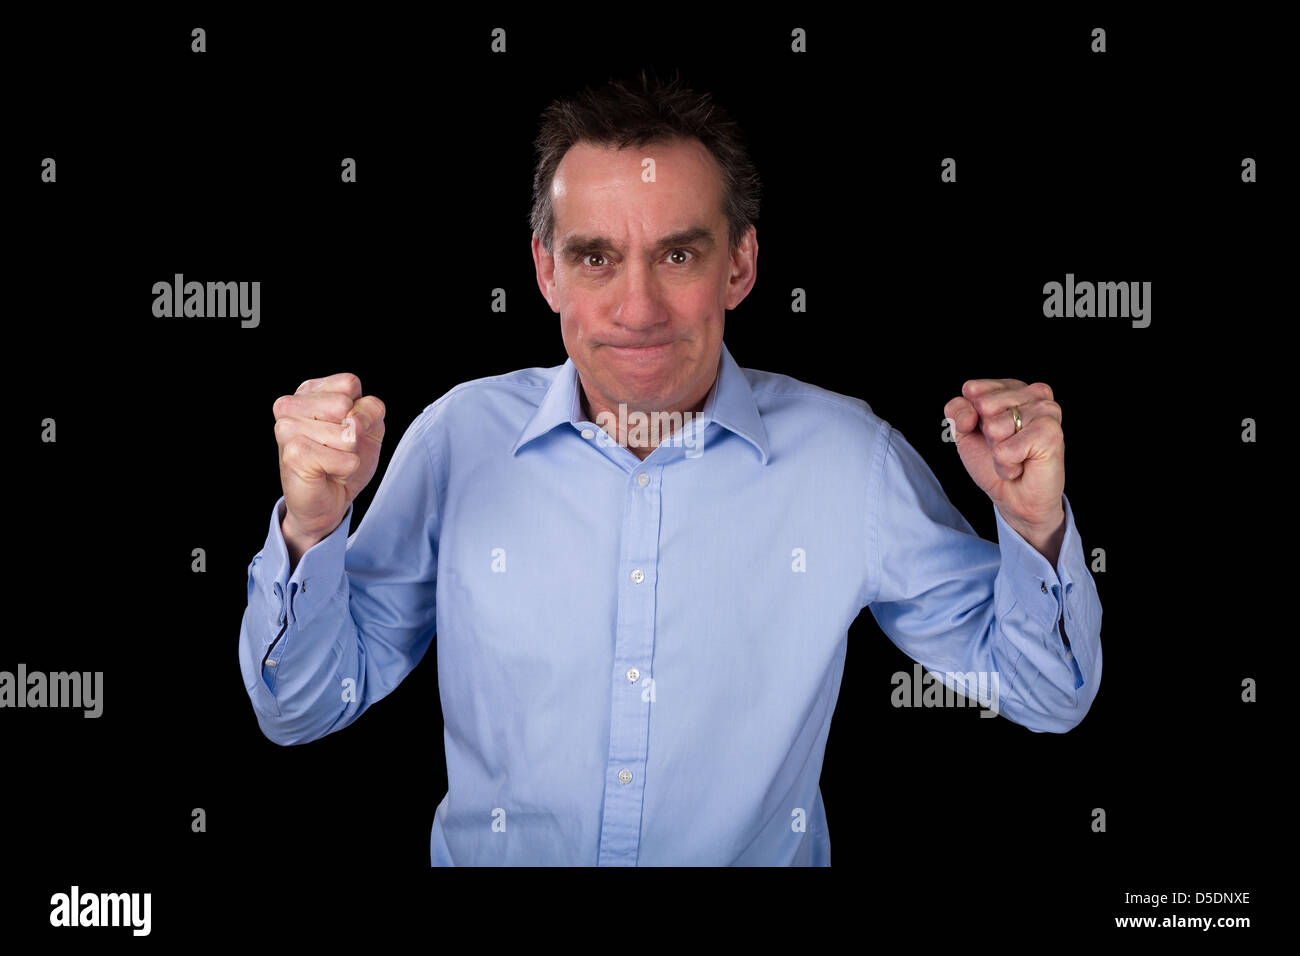 Angry Middle Age Business Man Shaking Fists in Frustration Black Background Stock Photo